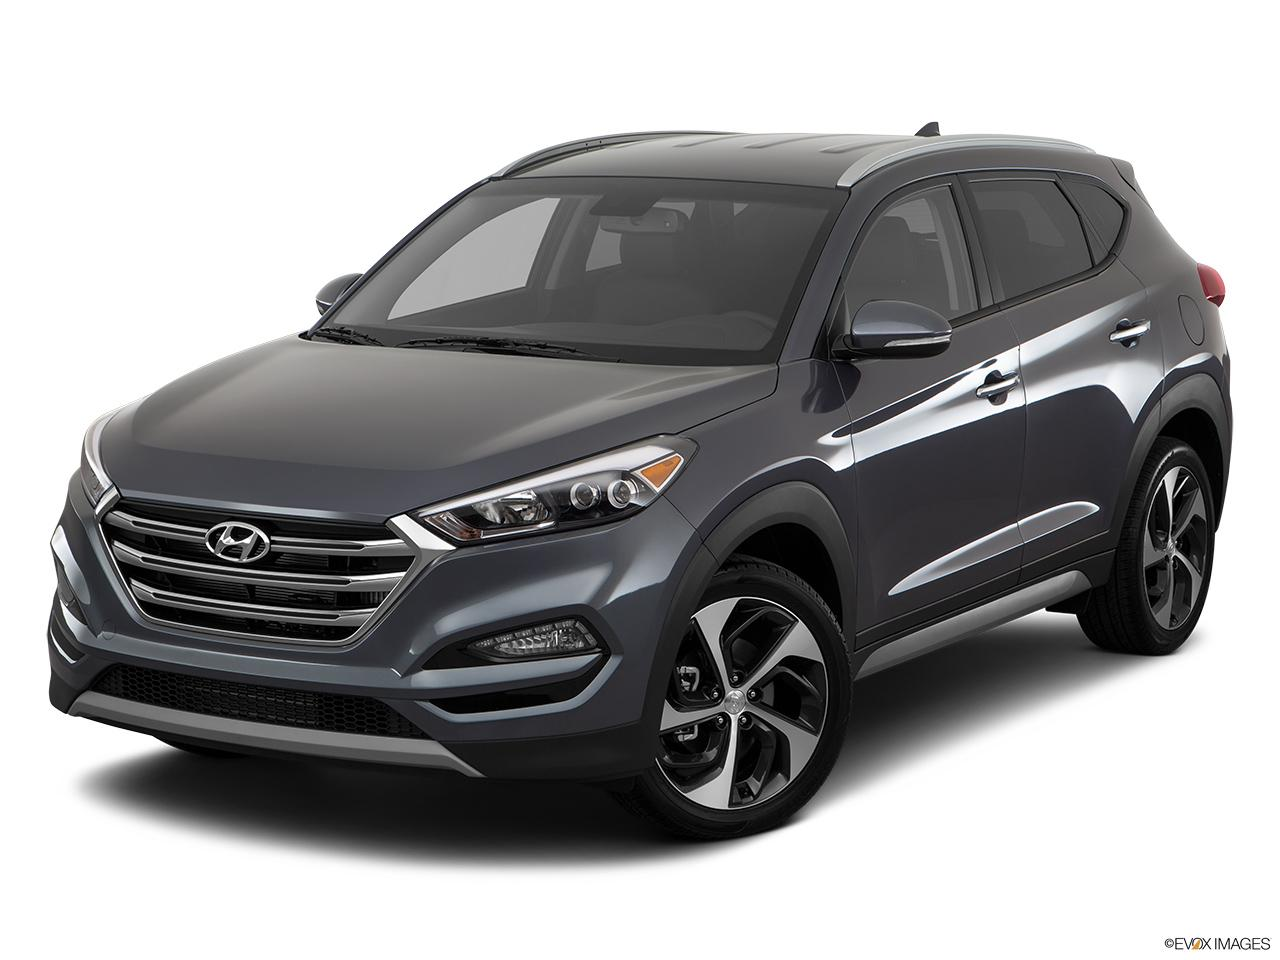 hyundai tucson 2018 pre o vers es novidades carro bonito. Black Bedroom Furniture Sets. Home Design Ideas